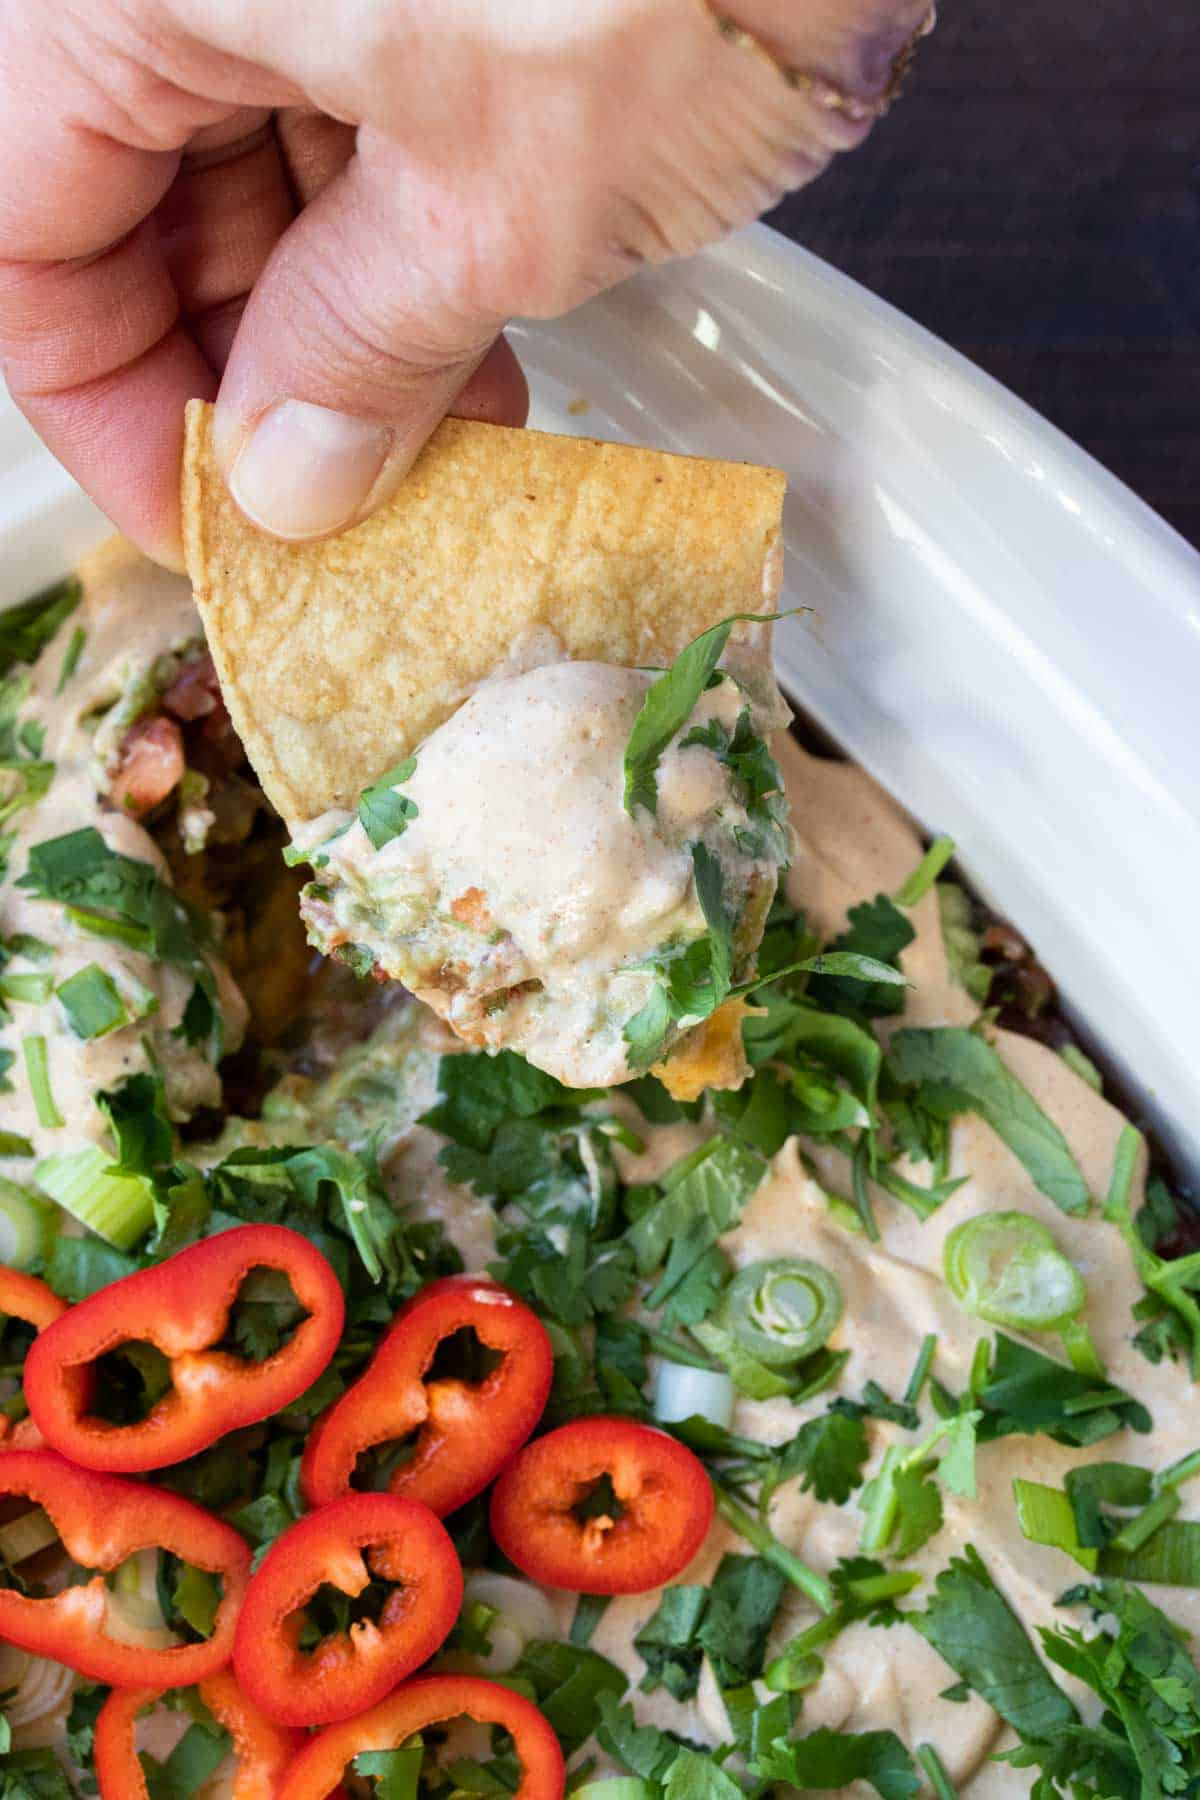 Hand dipping tortillas chip into a dish of 7 layer dip